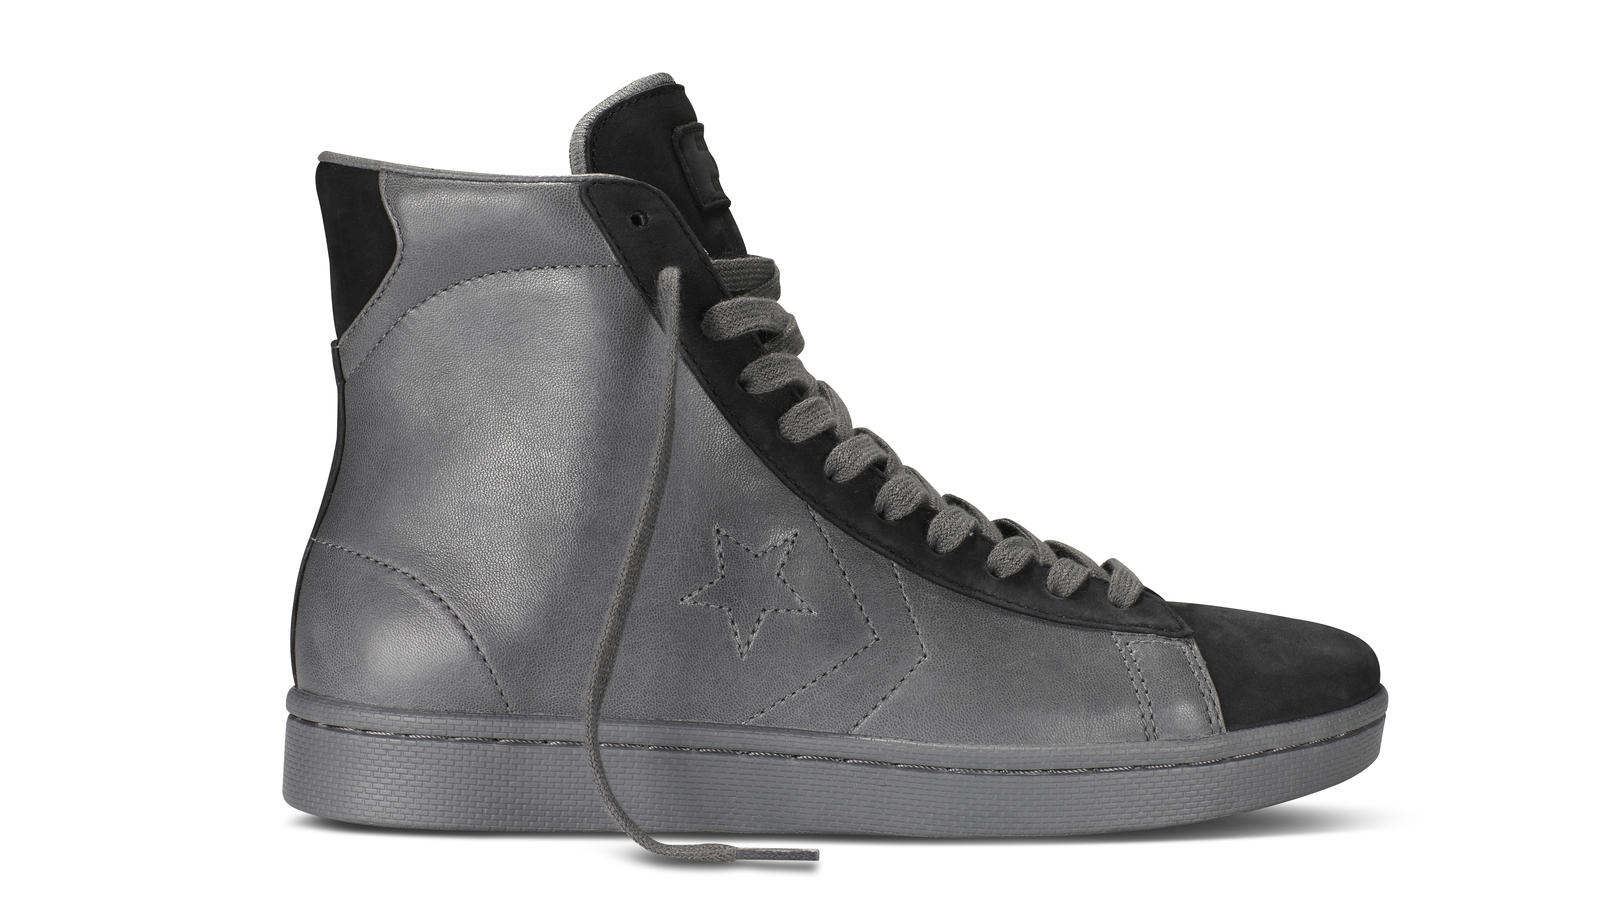 ab82af3dbb8a Converse And Ace Hotel Reunite With New Pro Leather High For Holiday ...